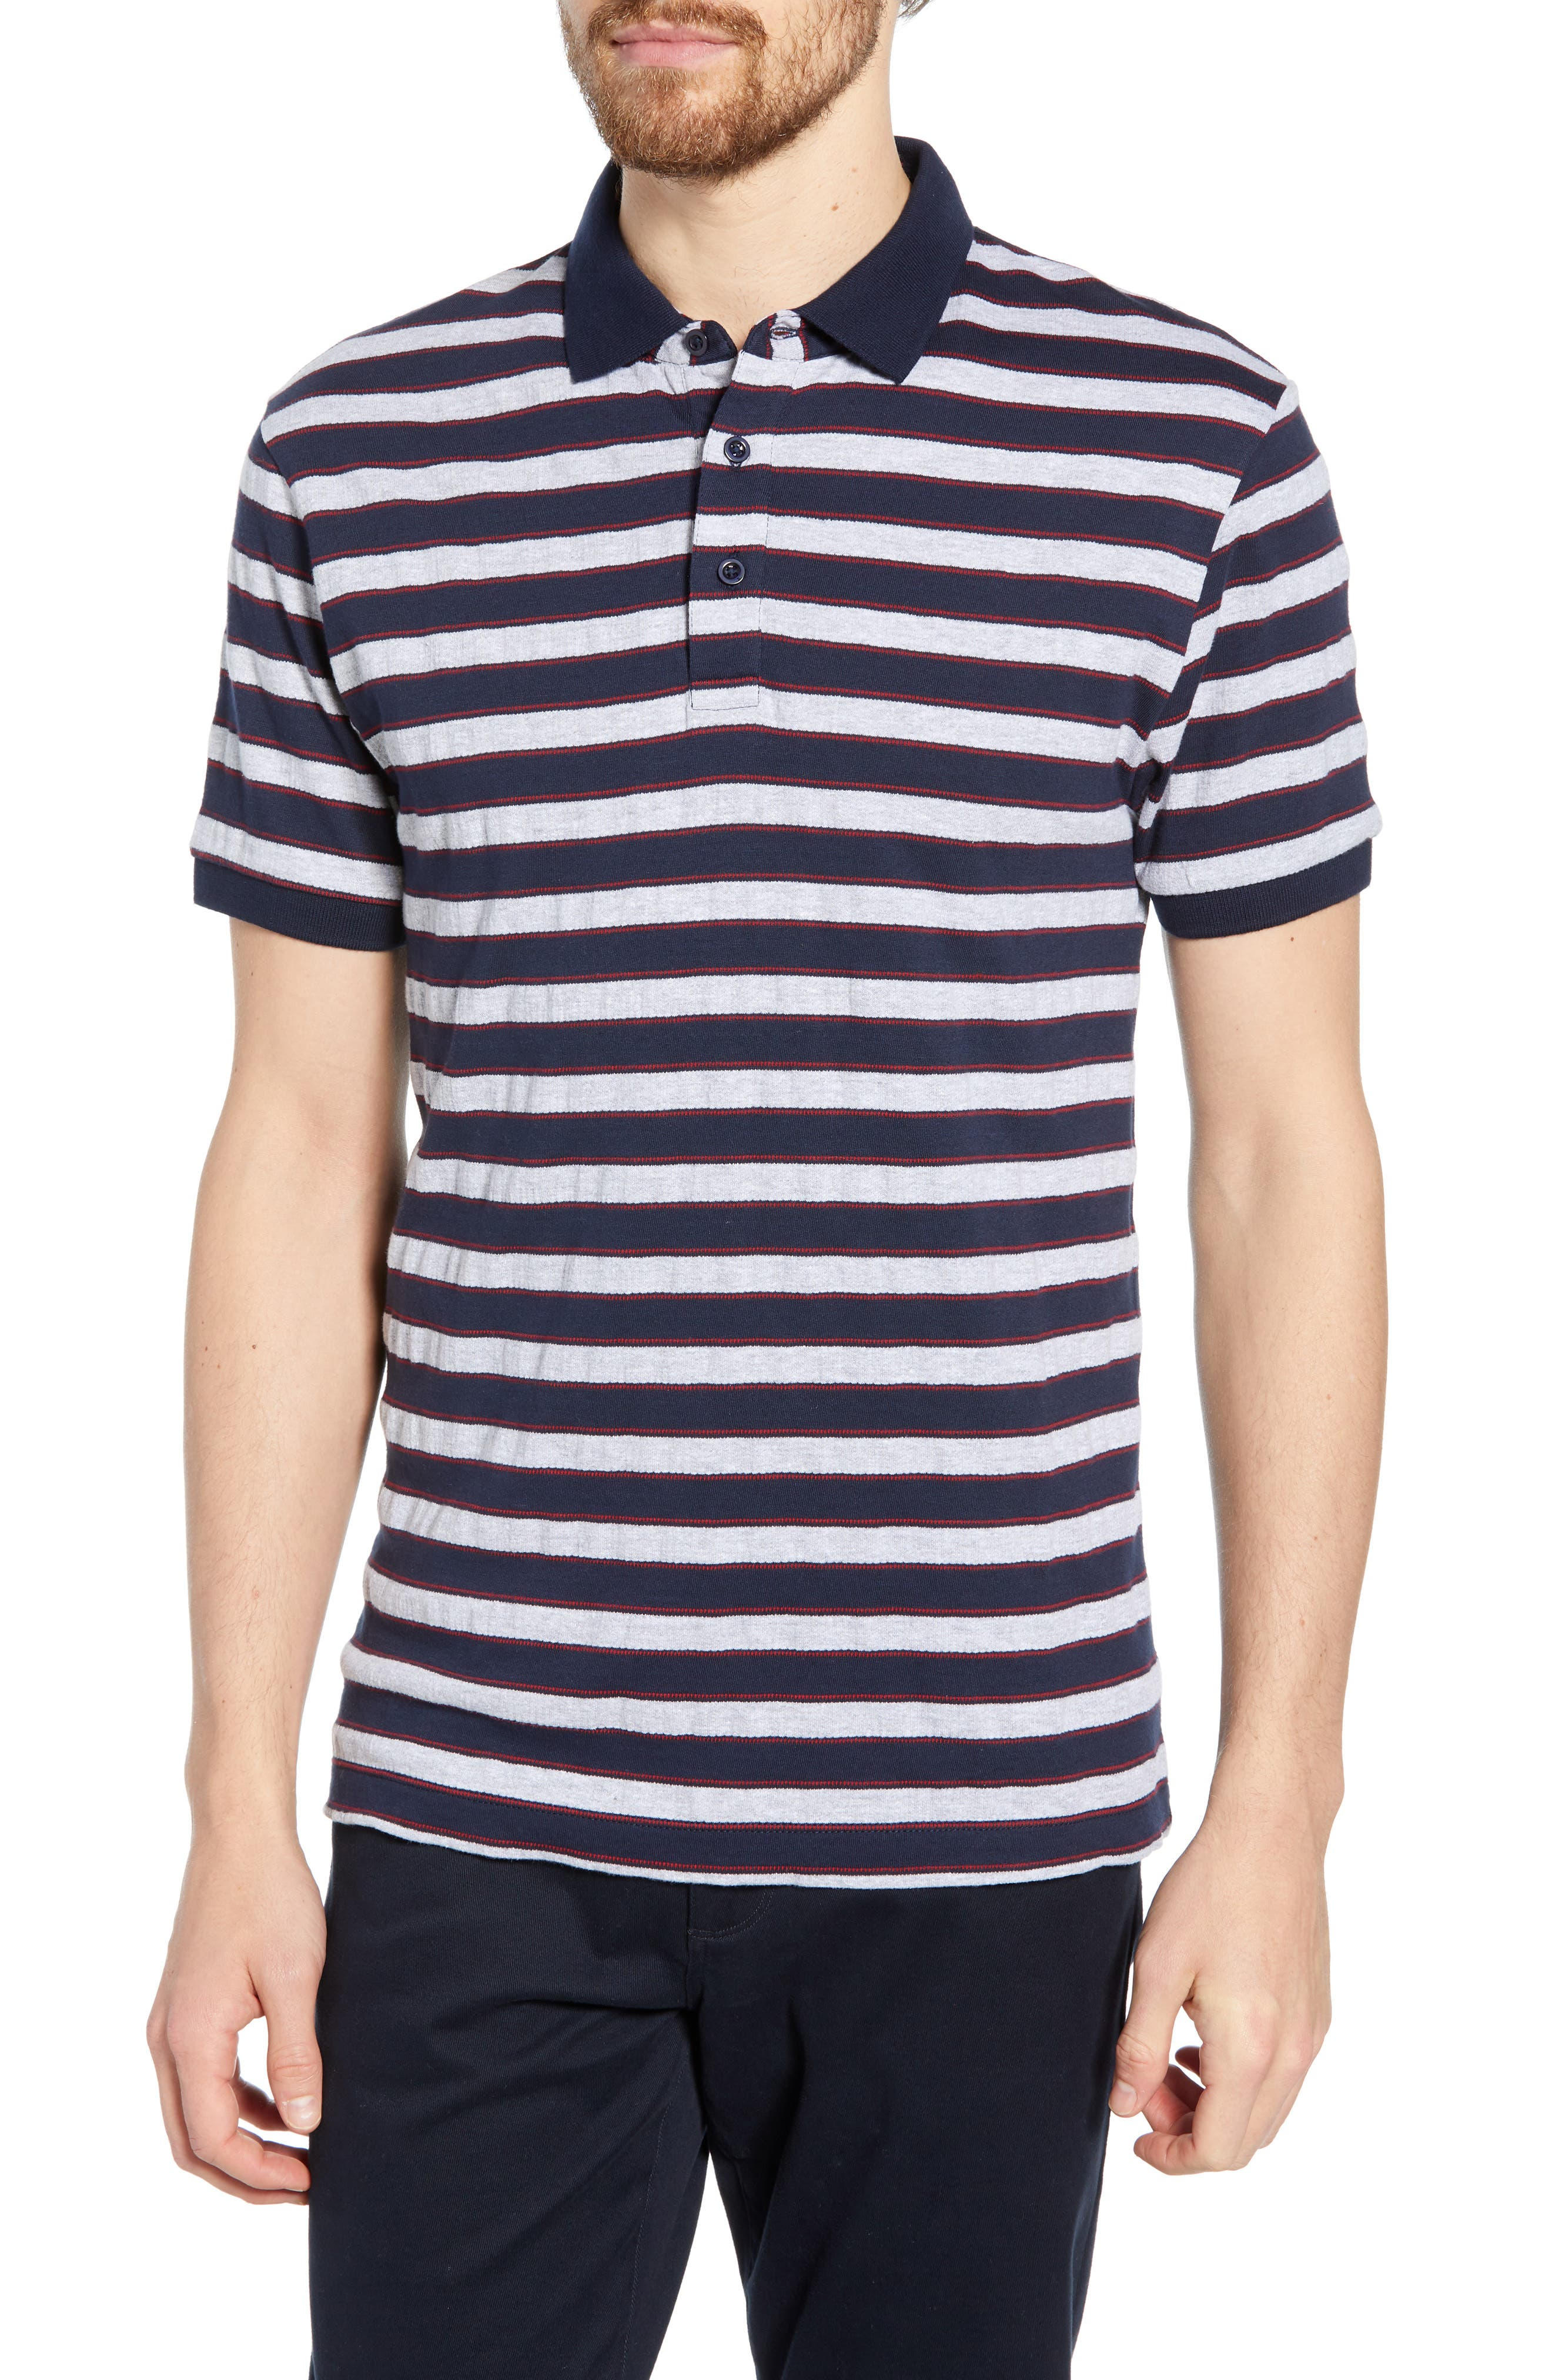 FRENCH CONNECTION, Stripe Regular Fit Mélange Polo, Main thumbnail 1, color, UTILITY BLUE